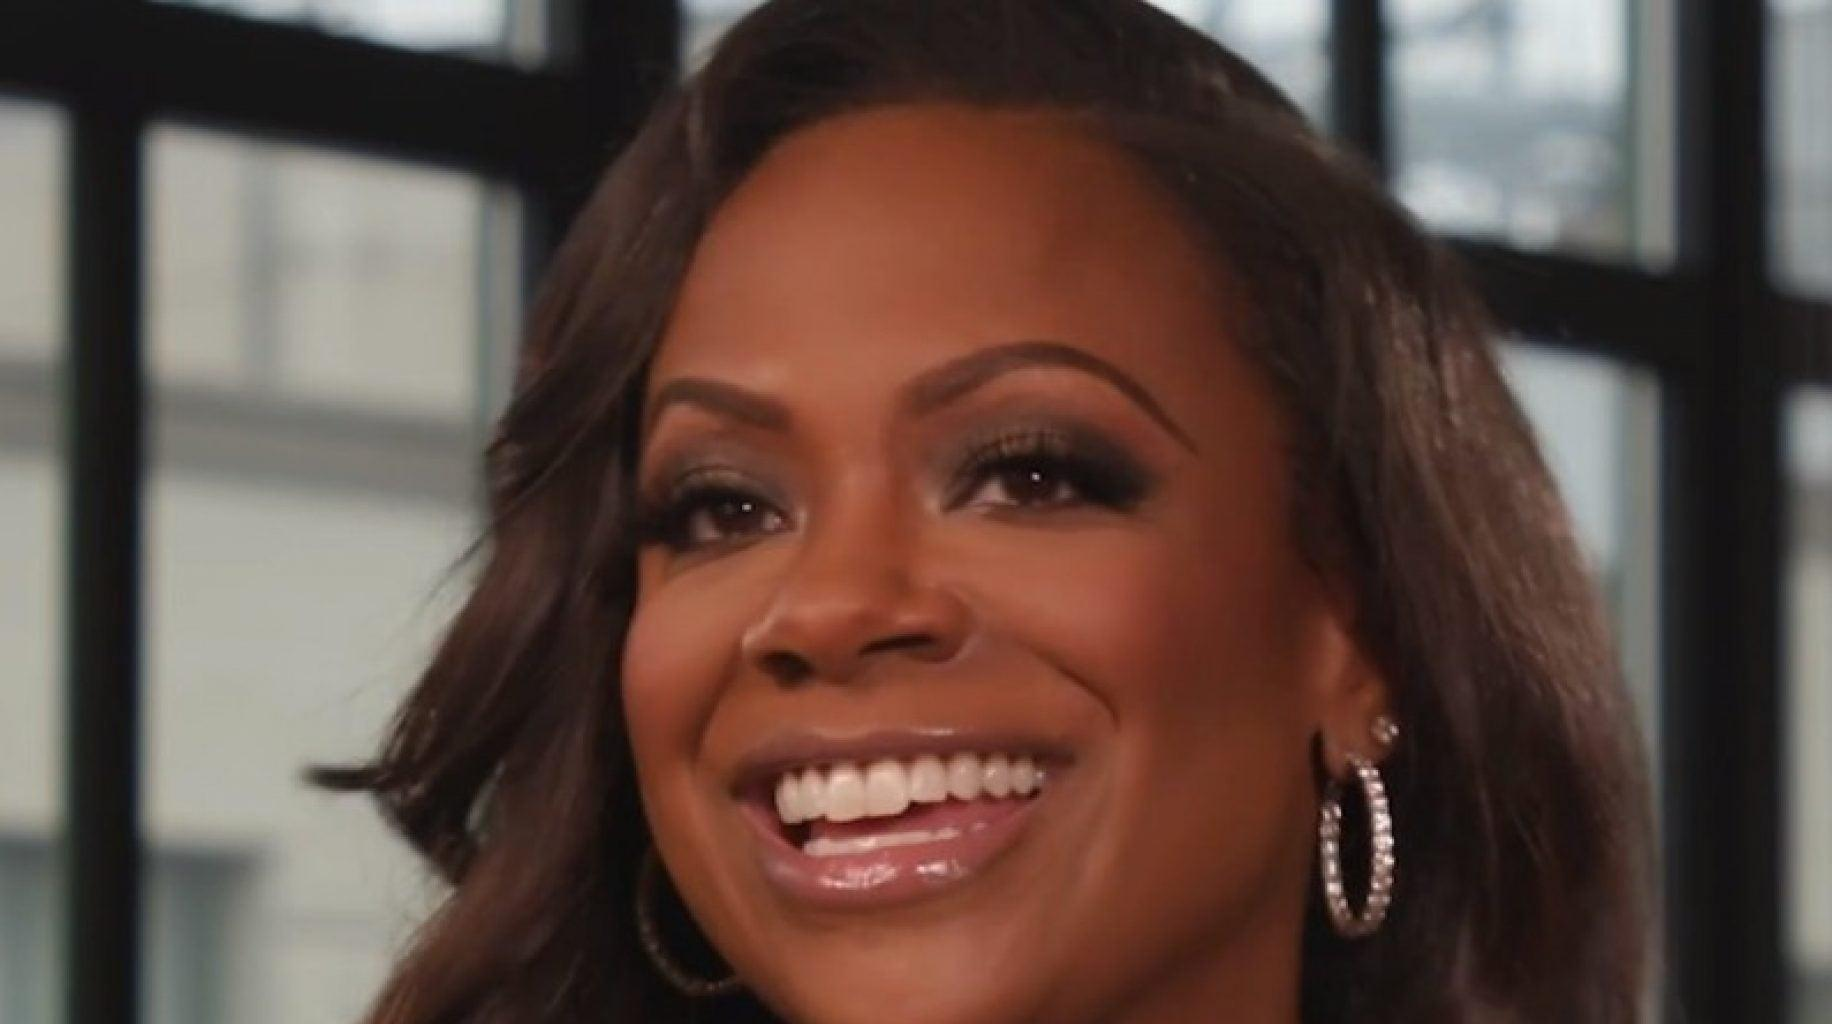 Kandi Burruss Is Preparing An Epic 90s Party - See Her Announcement